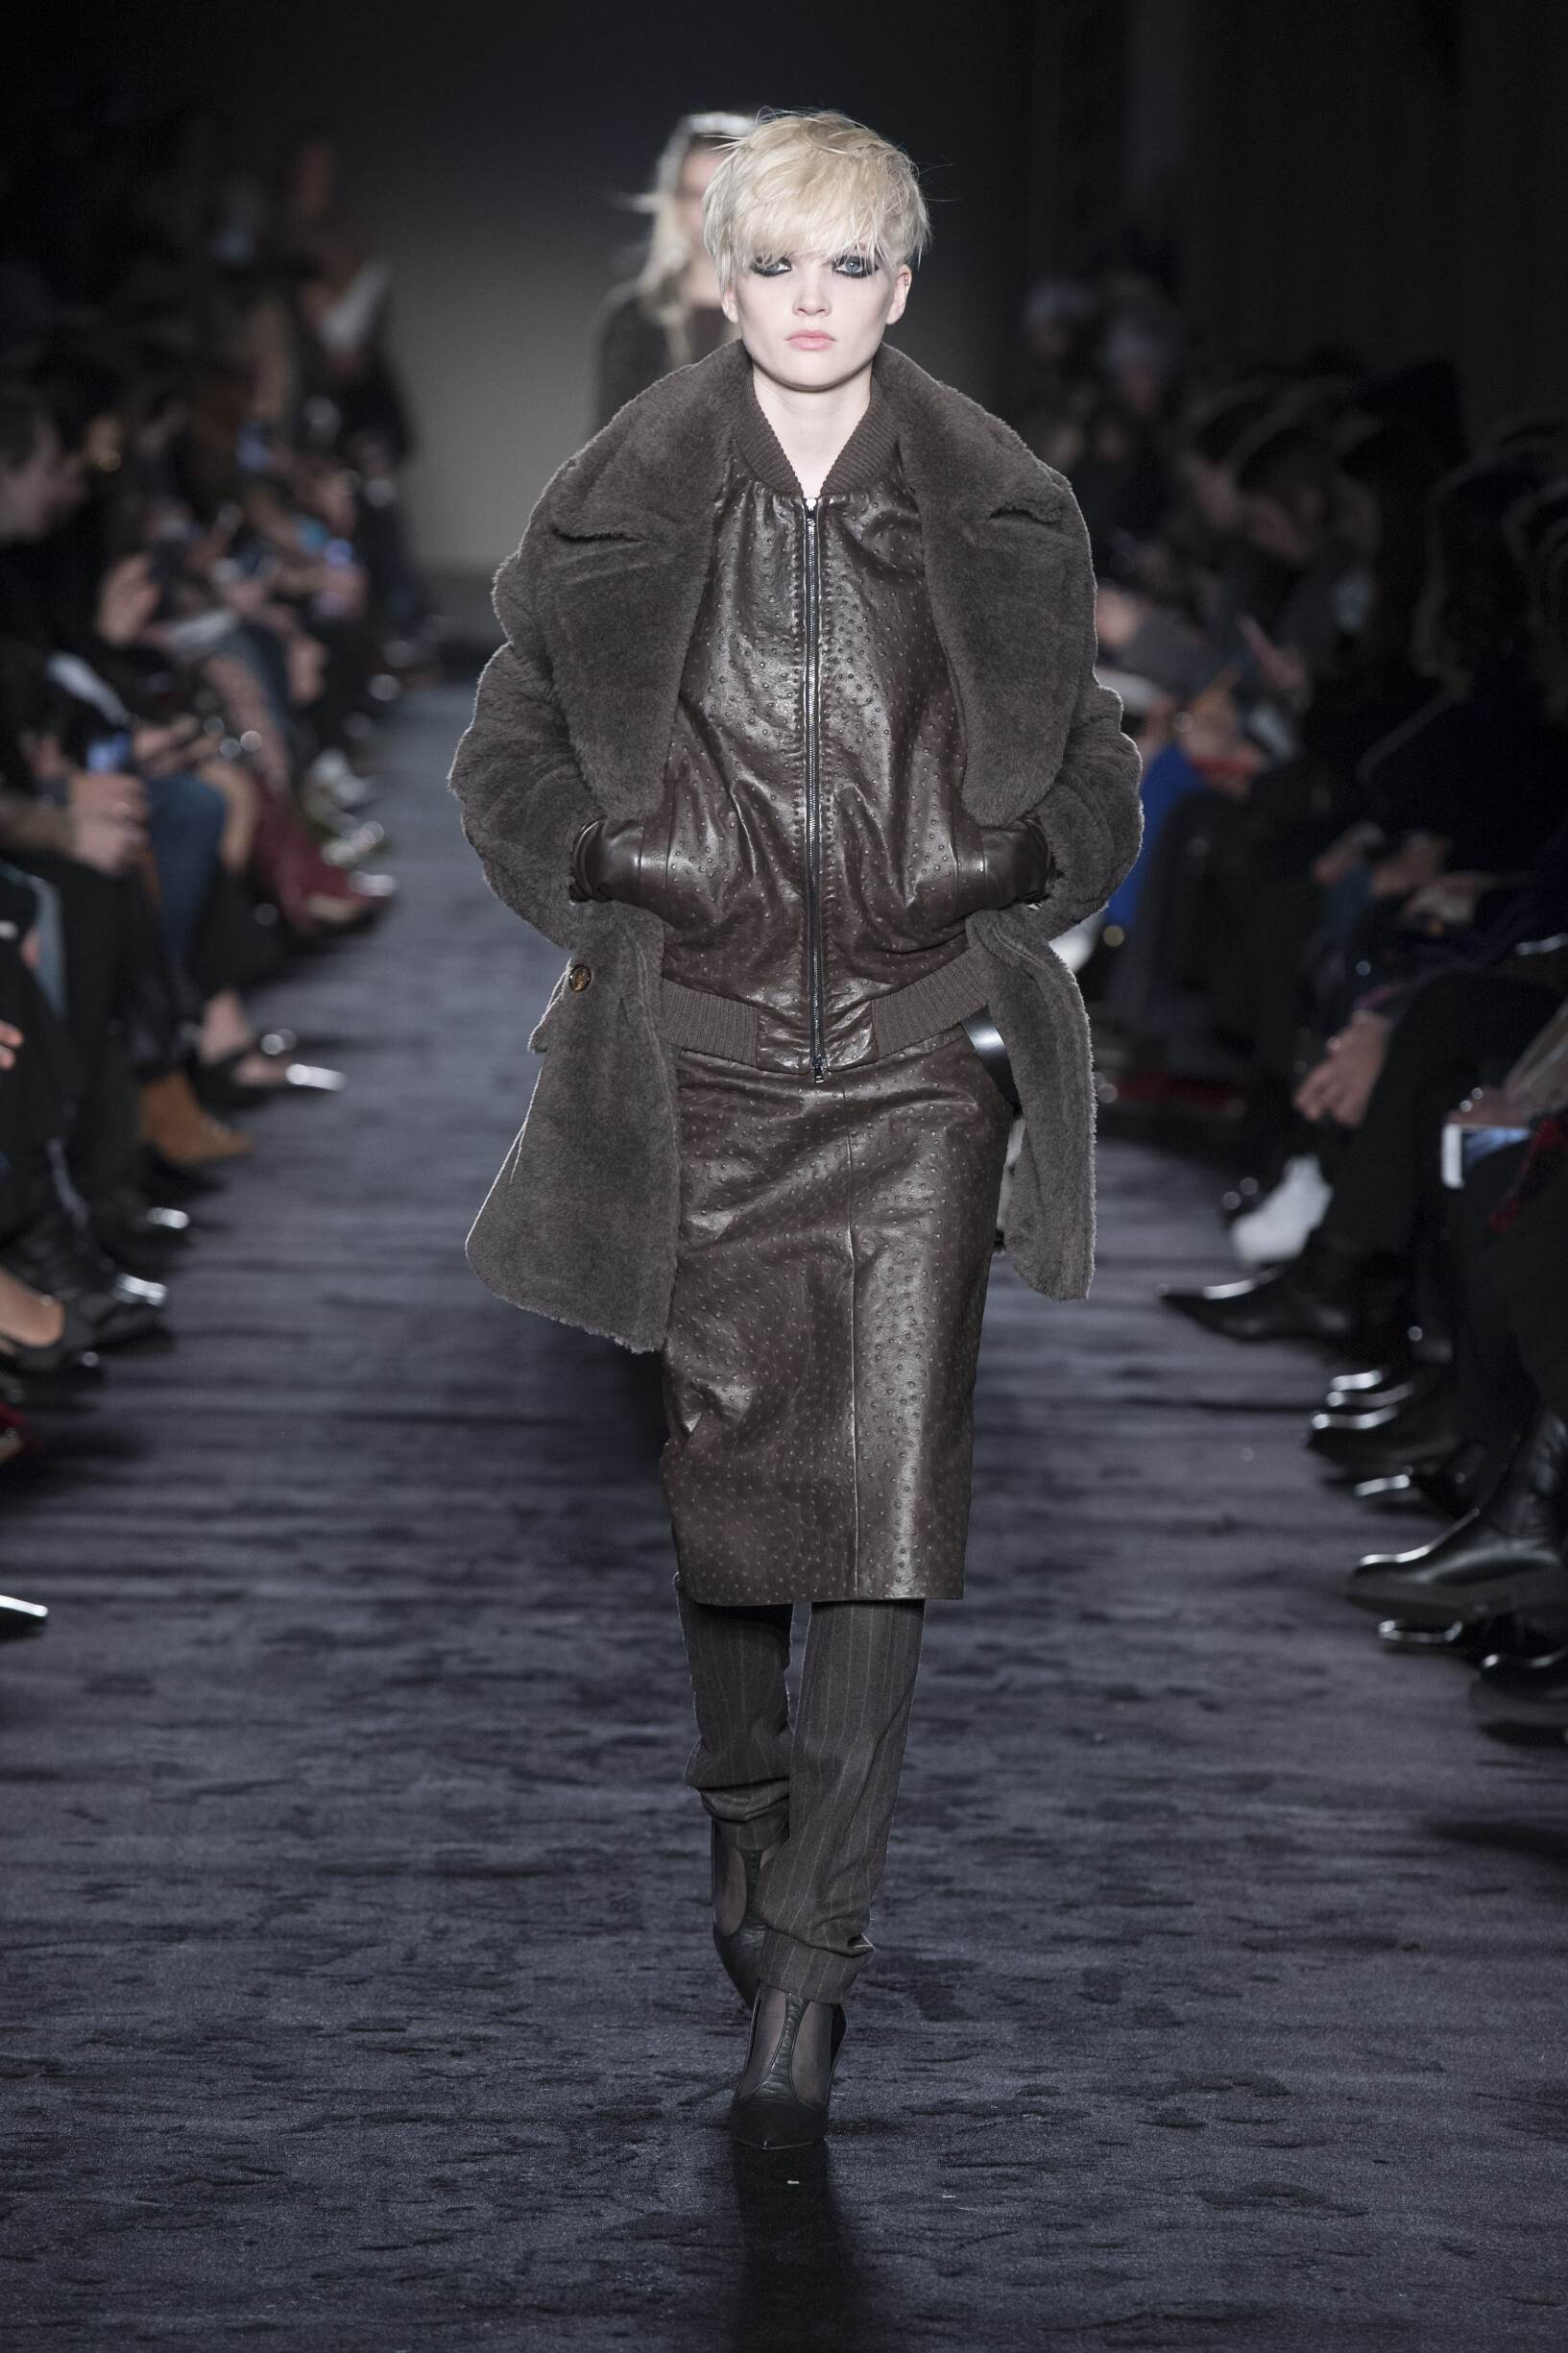 Runway Max Mara Fall Winter 2018 Women's Collection Milan Fashion Week